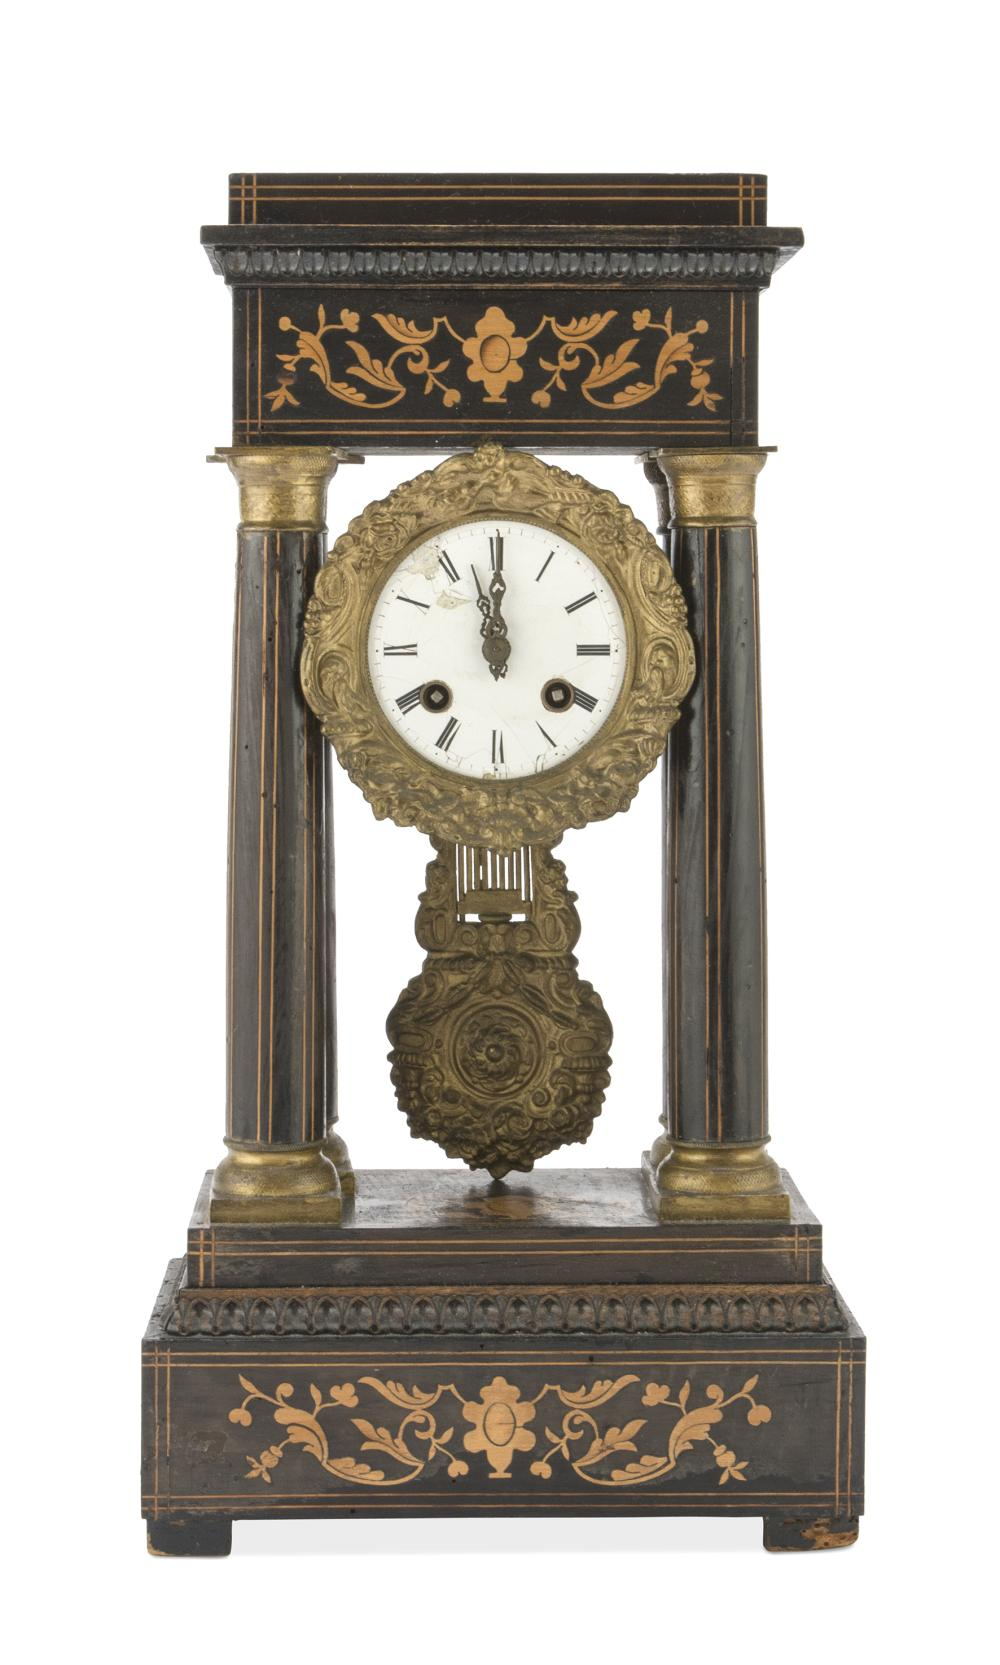 TEMPLE CLOCK IN PALISANDER, 19TH CENTURY